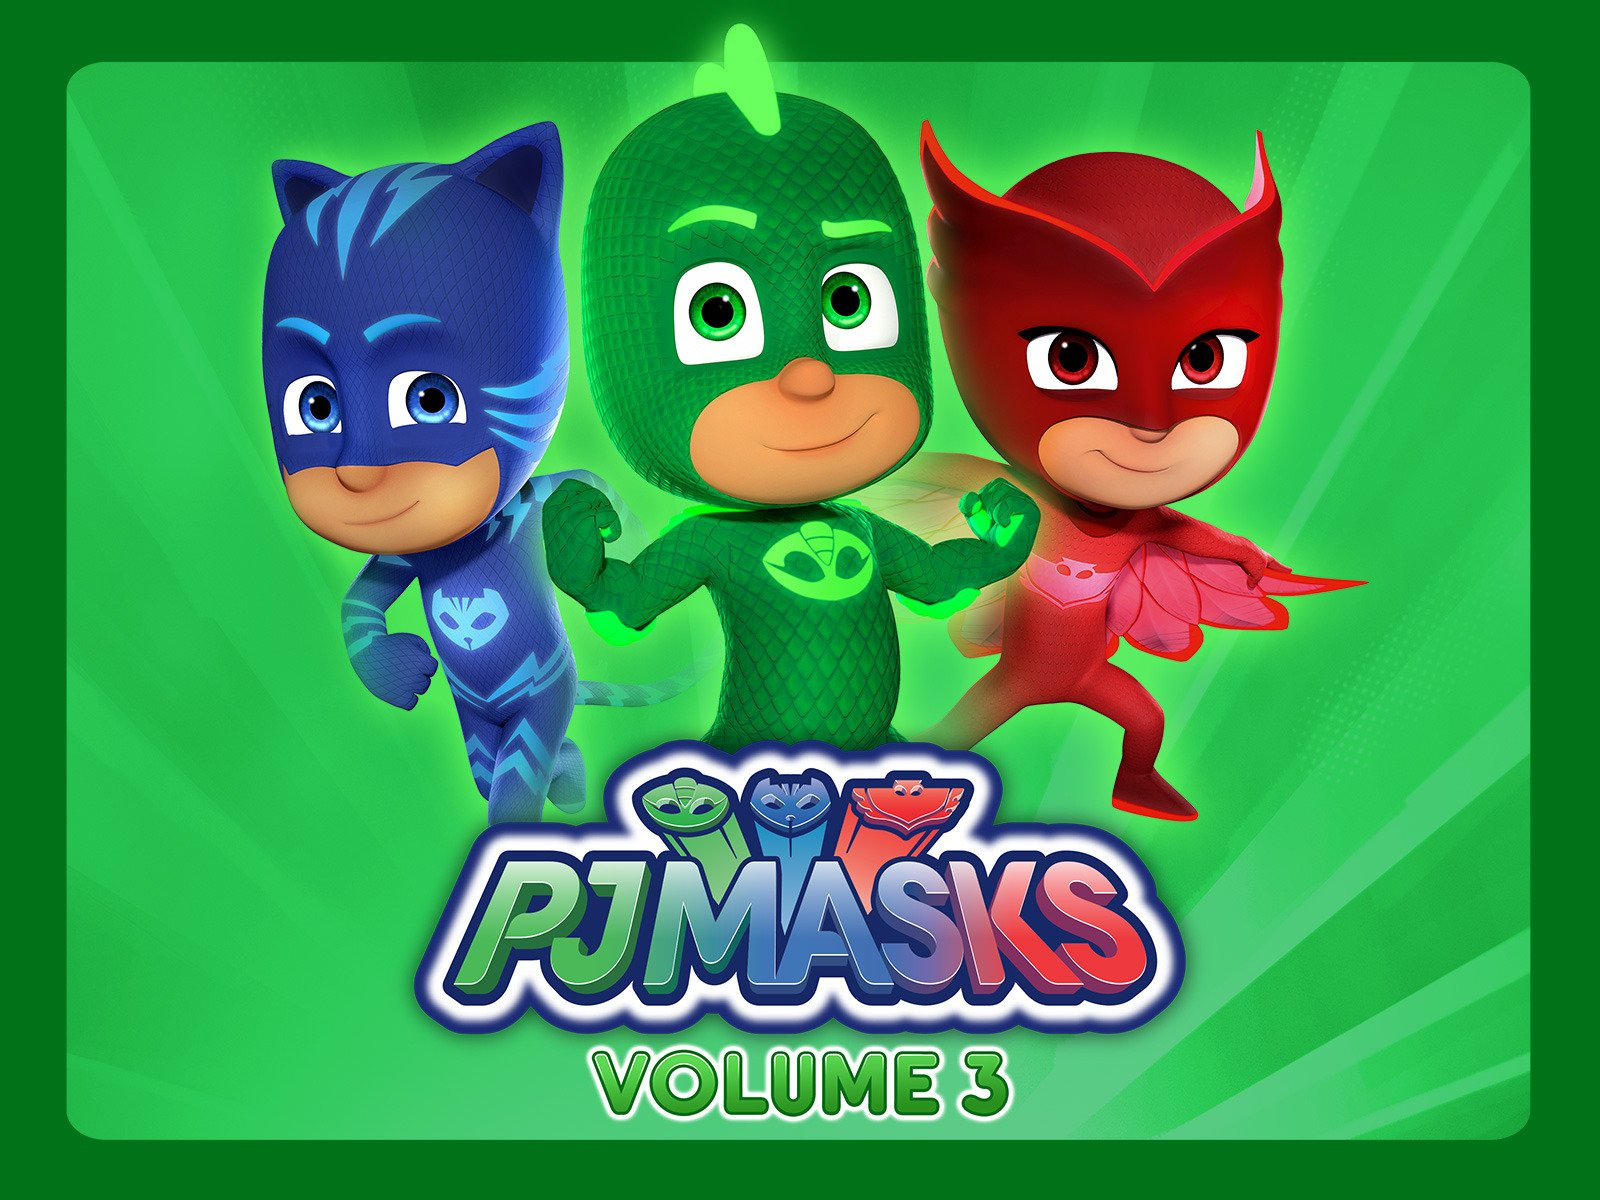 Amazon.com: PJ Masks, Volume 3: Jacob Ewaniuk, Kyle Harrison Breitkopf, Addison Holley, Christian De Vita, Wilson Dos Santos, Merle-Anne Ridley, ...